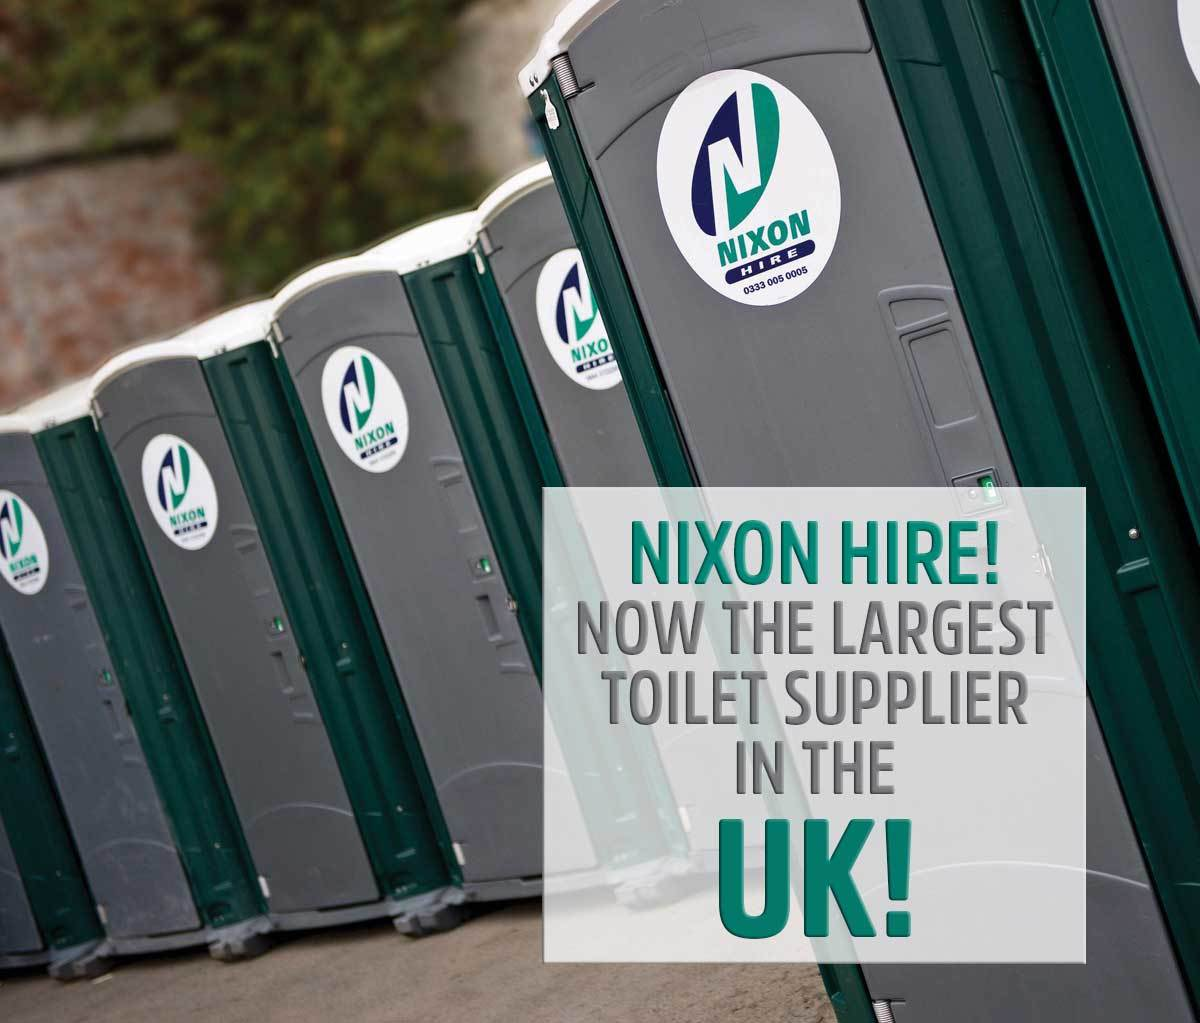 Row Of Nixon Hire Portable Toilets Ready For Event